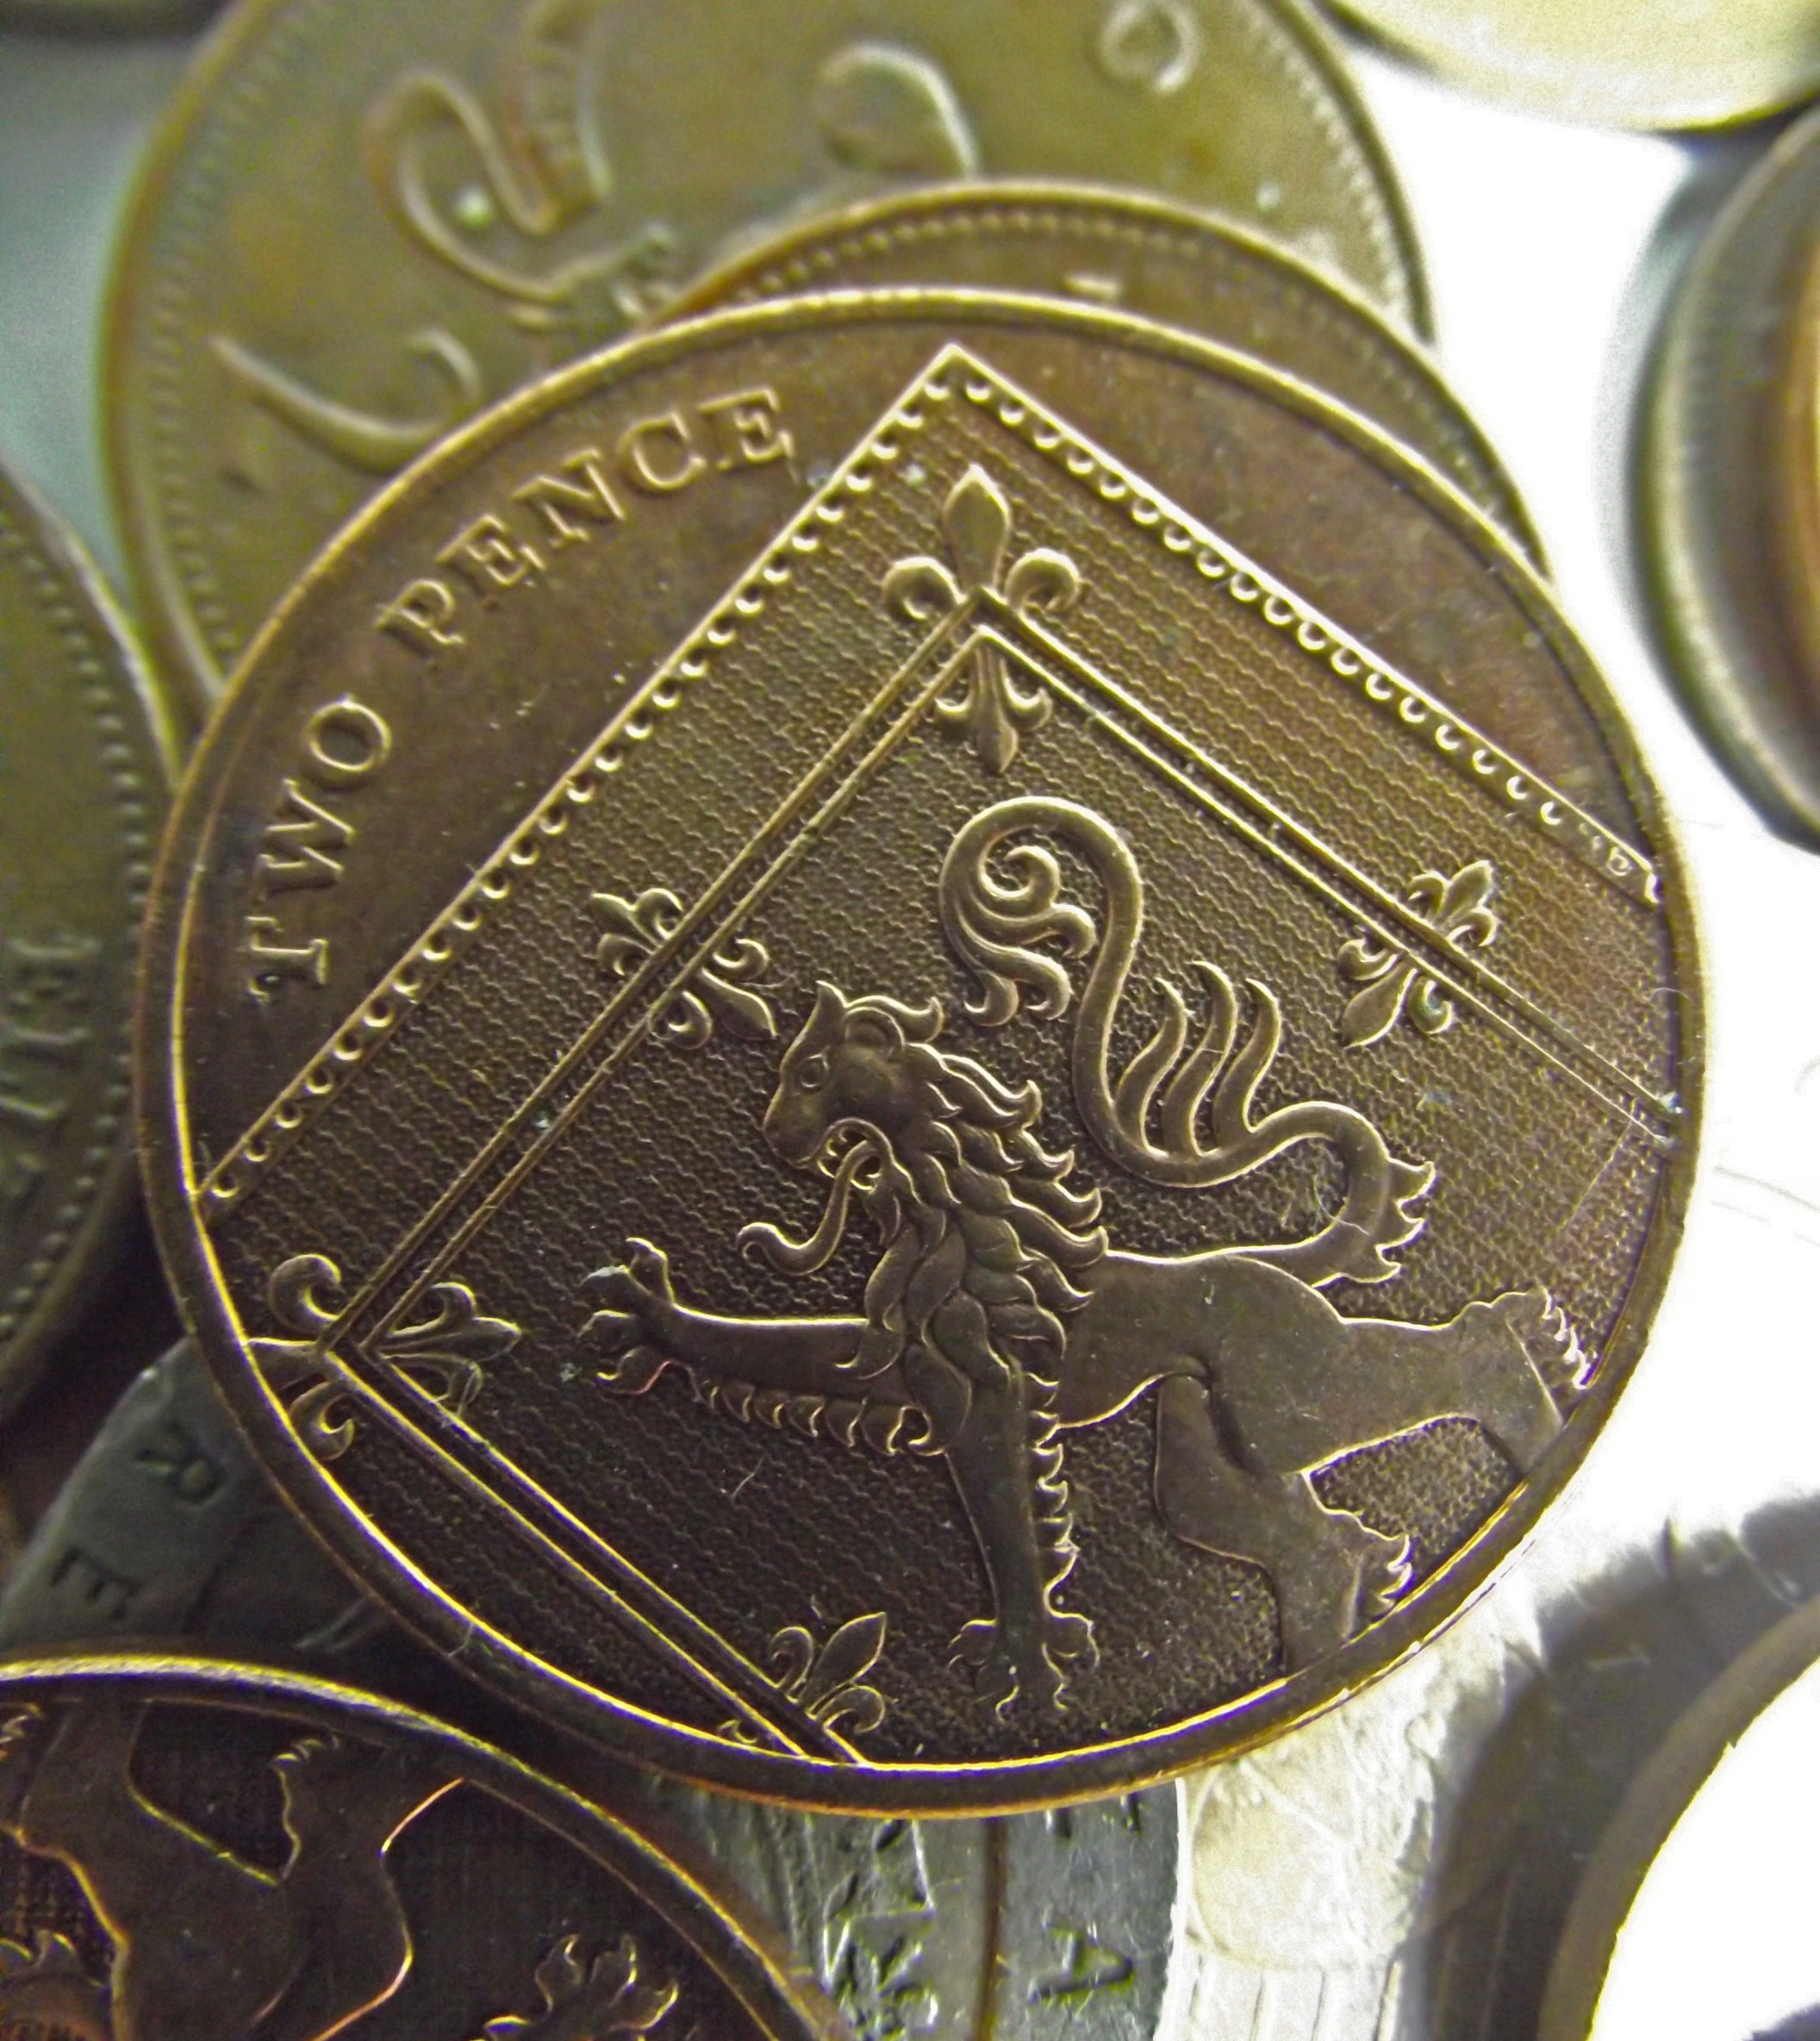 2p two 2 pence coin coins